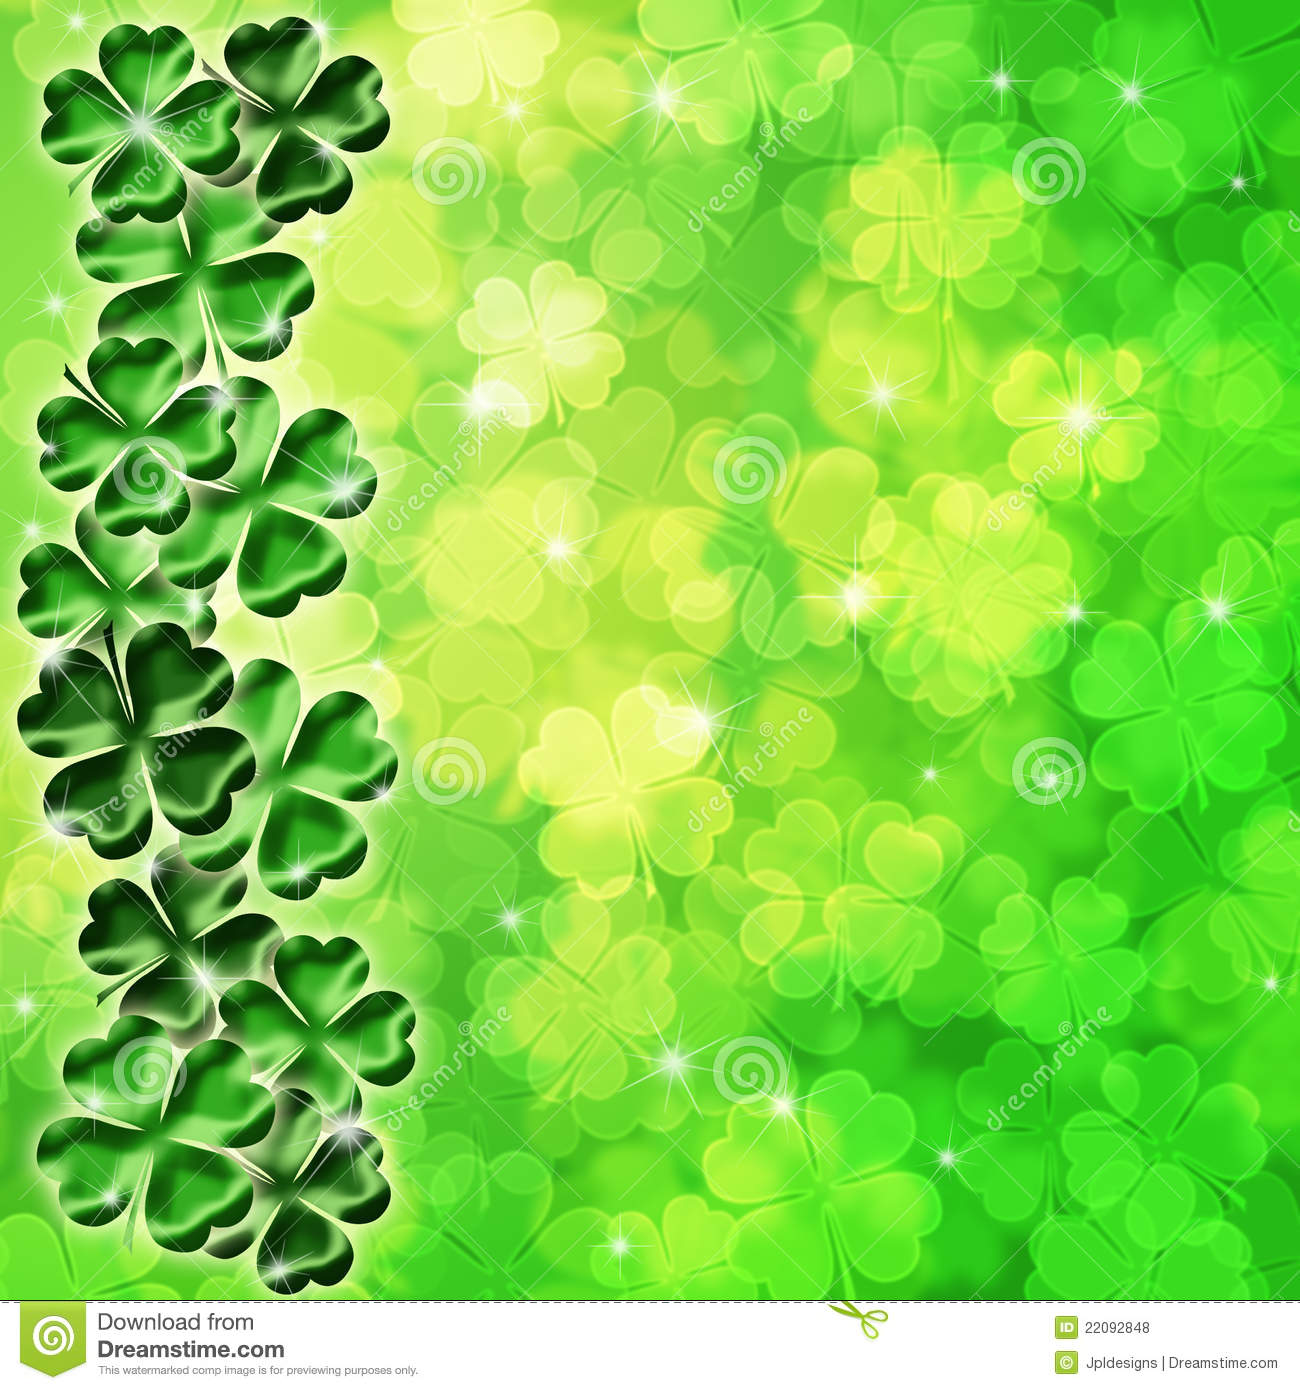 Lucky Irish Four Leaf Clover Shamrock Sparkles on Blurred Background ...